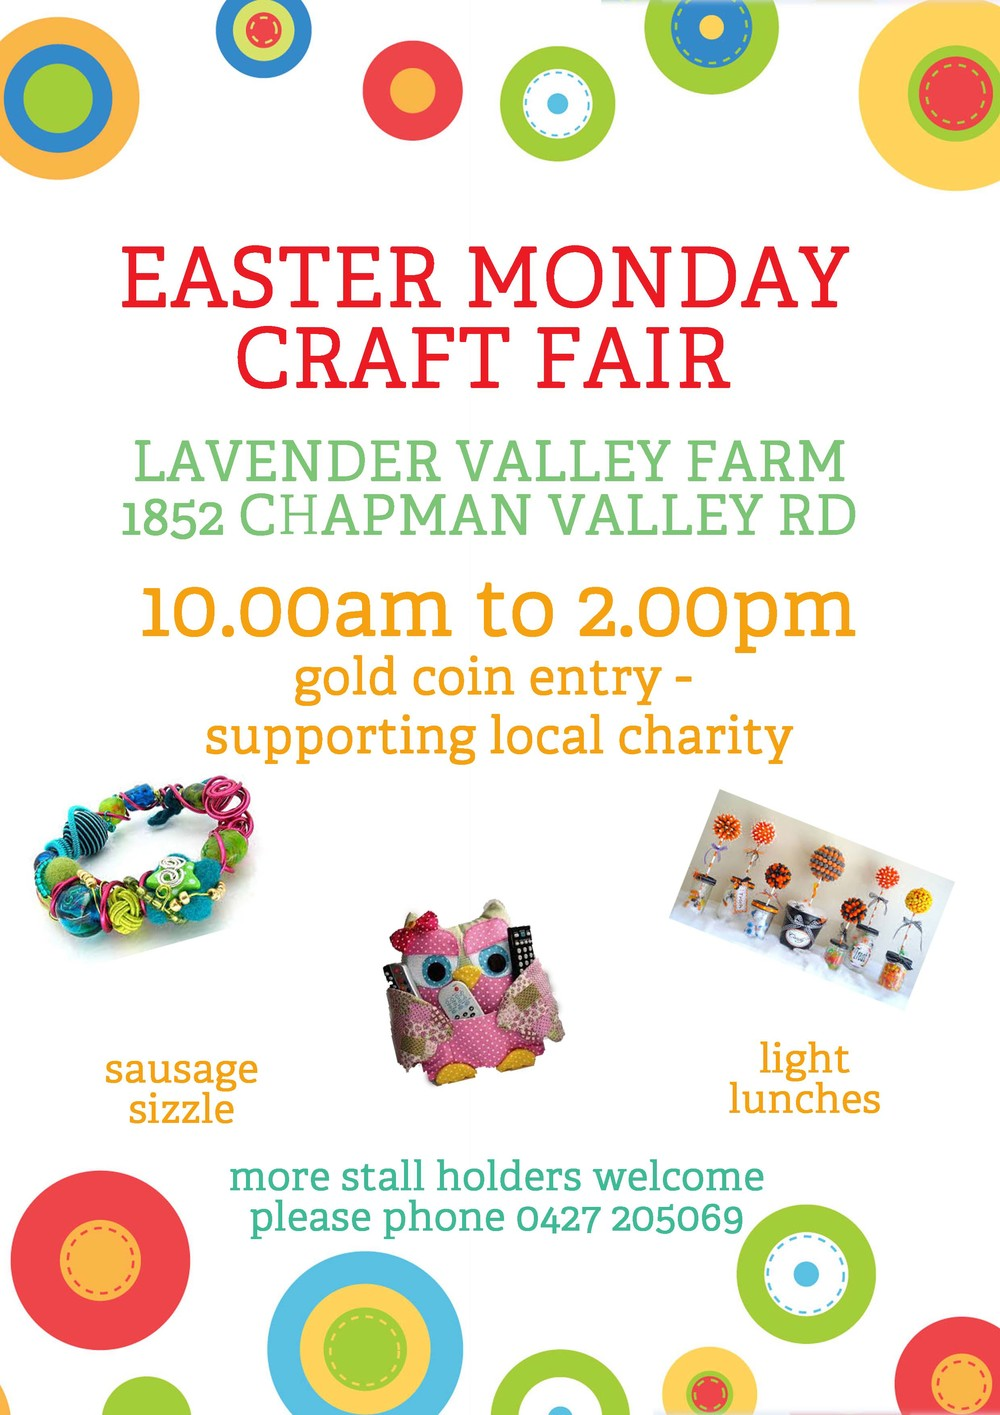 Easter Monday Craft Fair